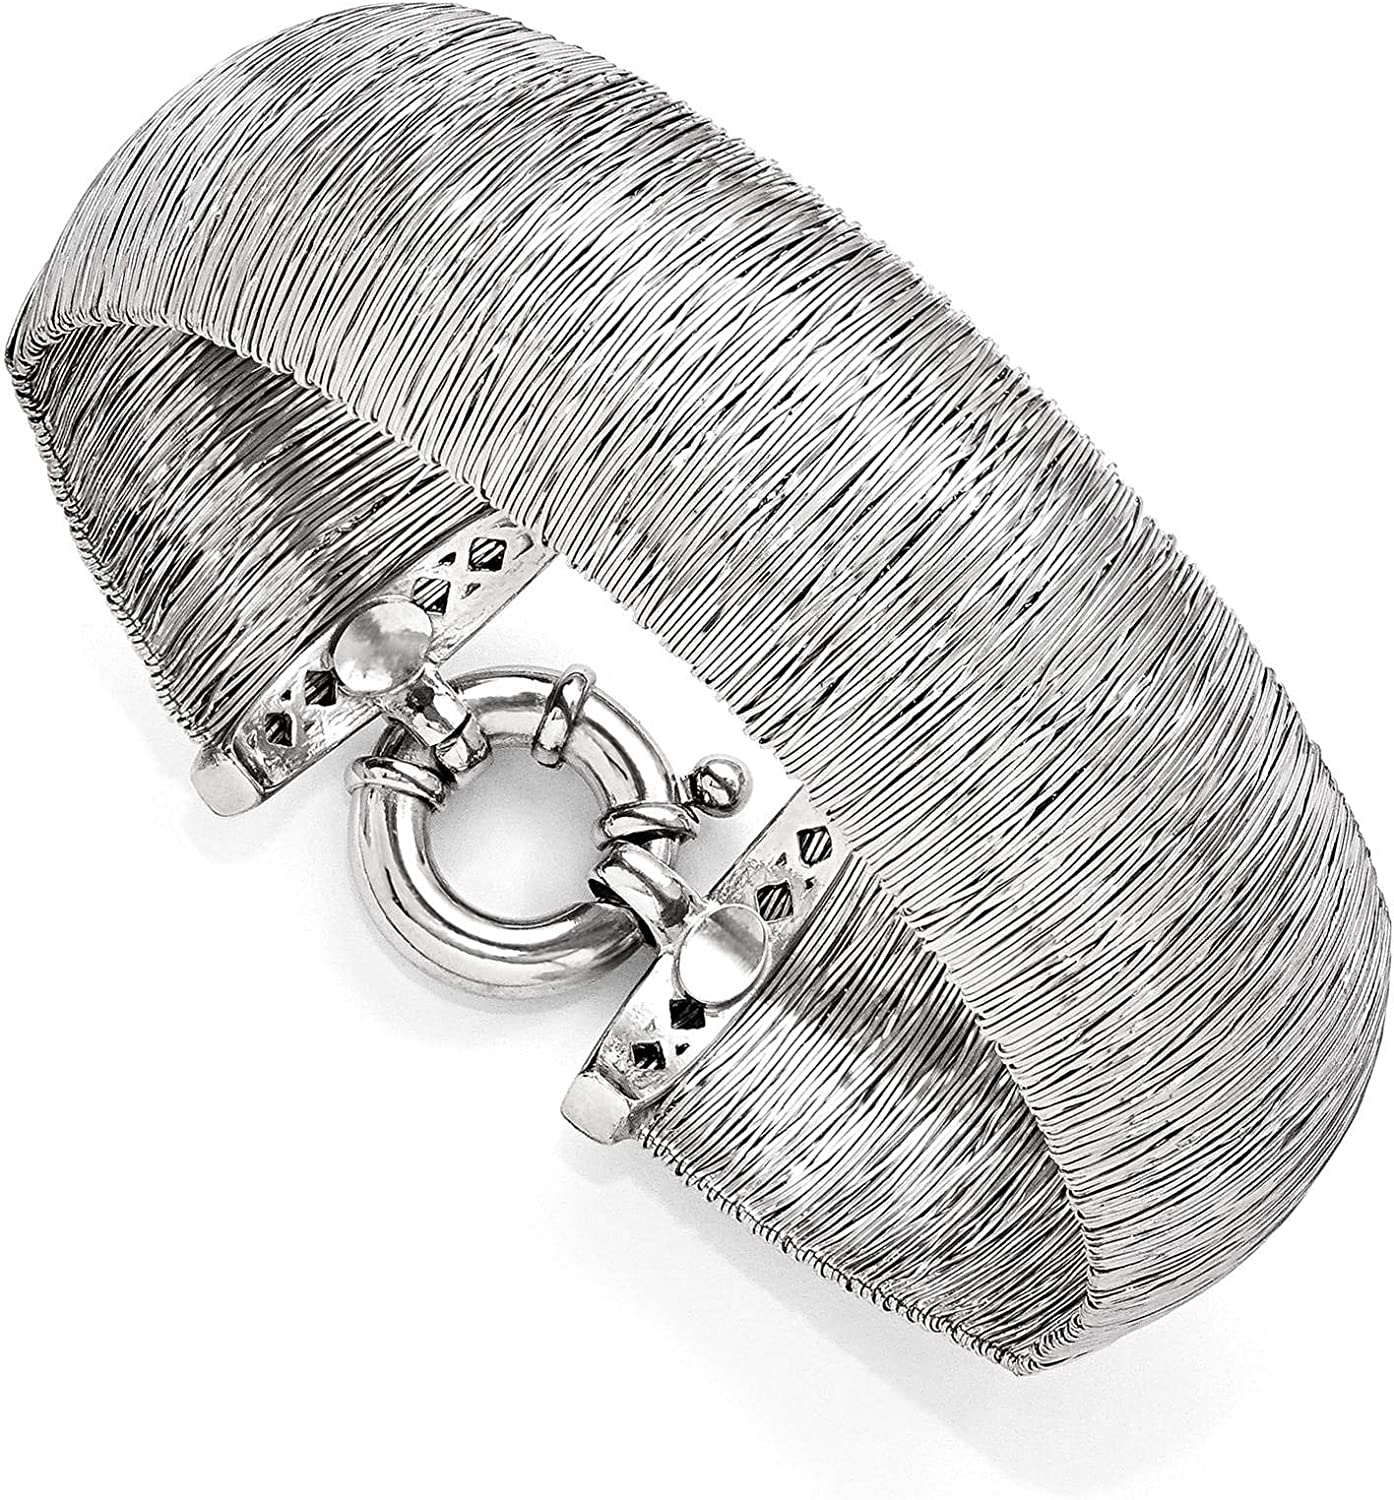 925 Sterling Silver Polished /& Textured Dome Bangle Bracelet 7.5 by Leslies